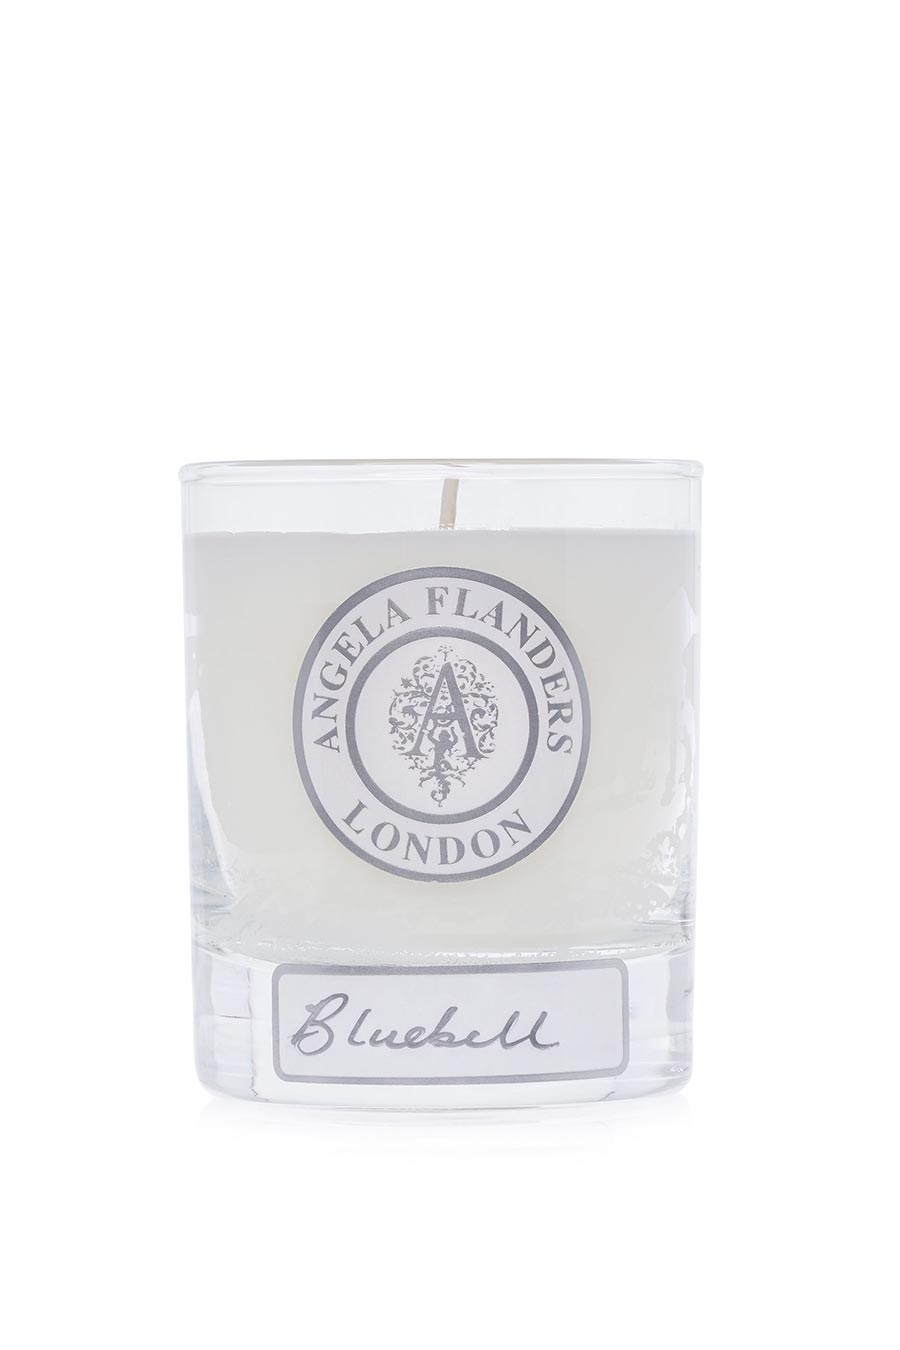 Angela Flanders Bluebell Candle